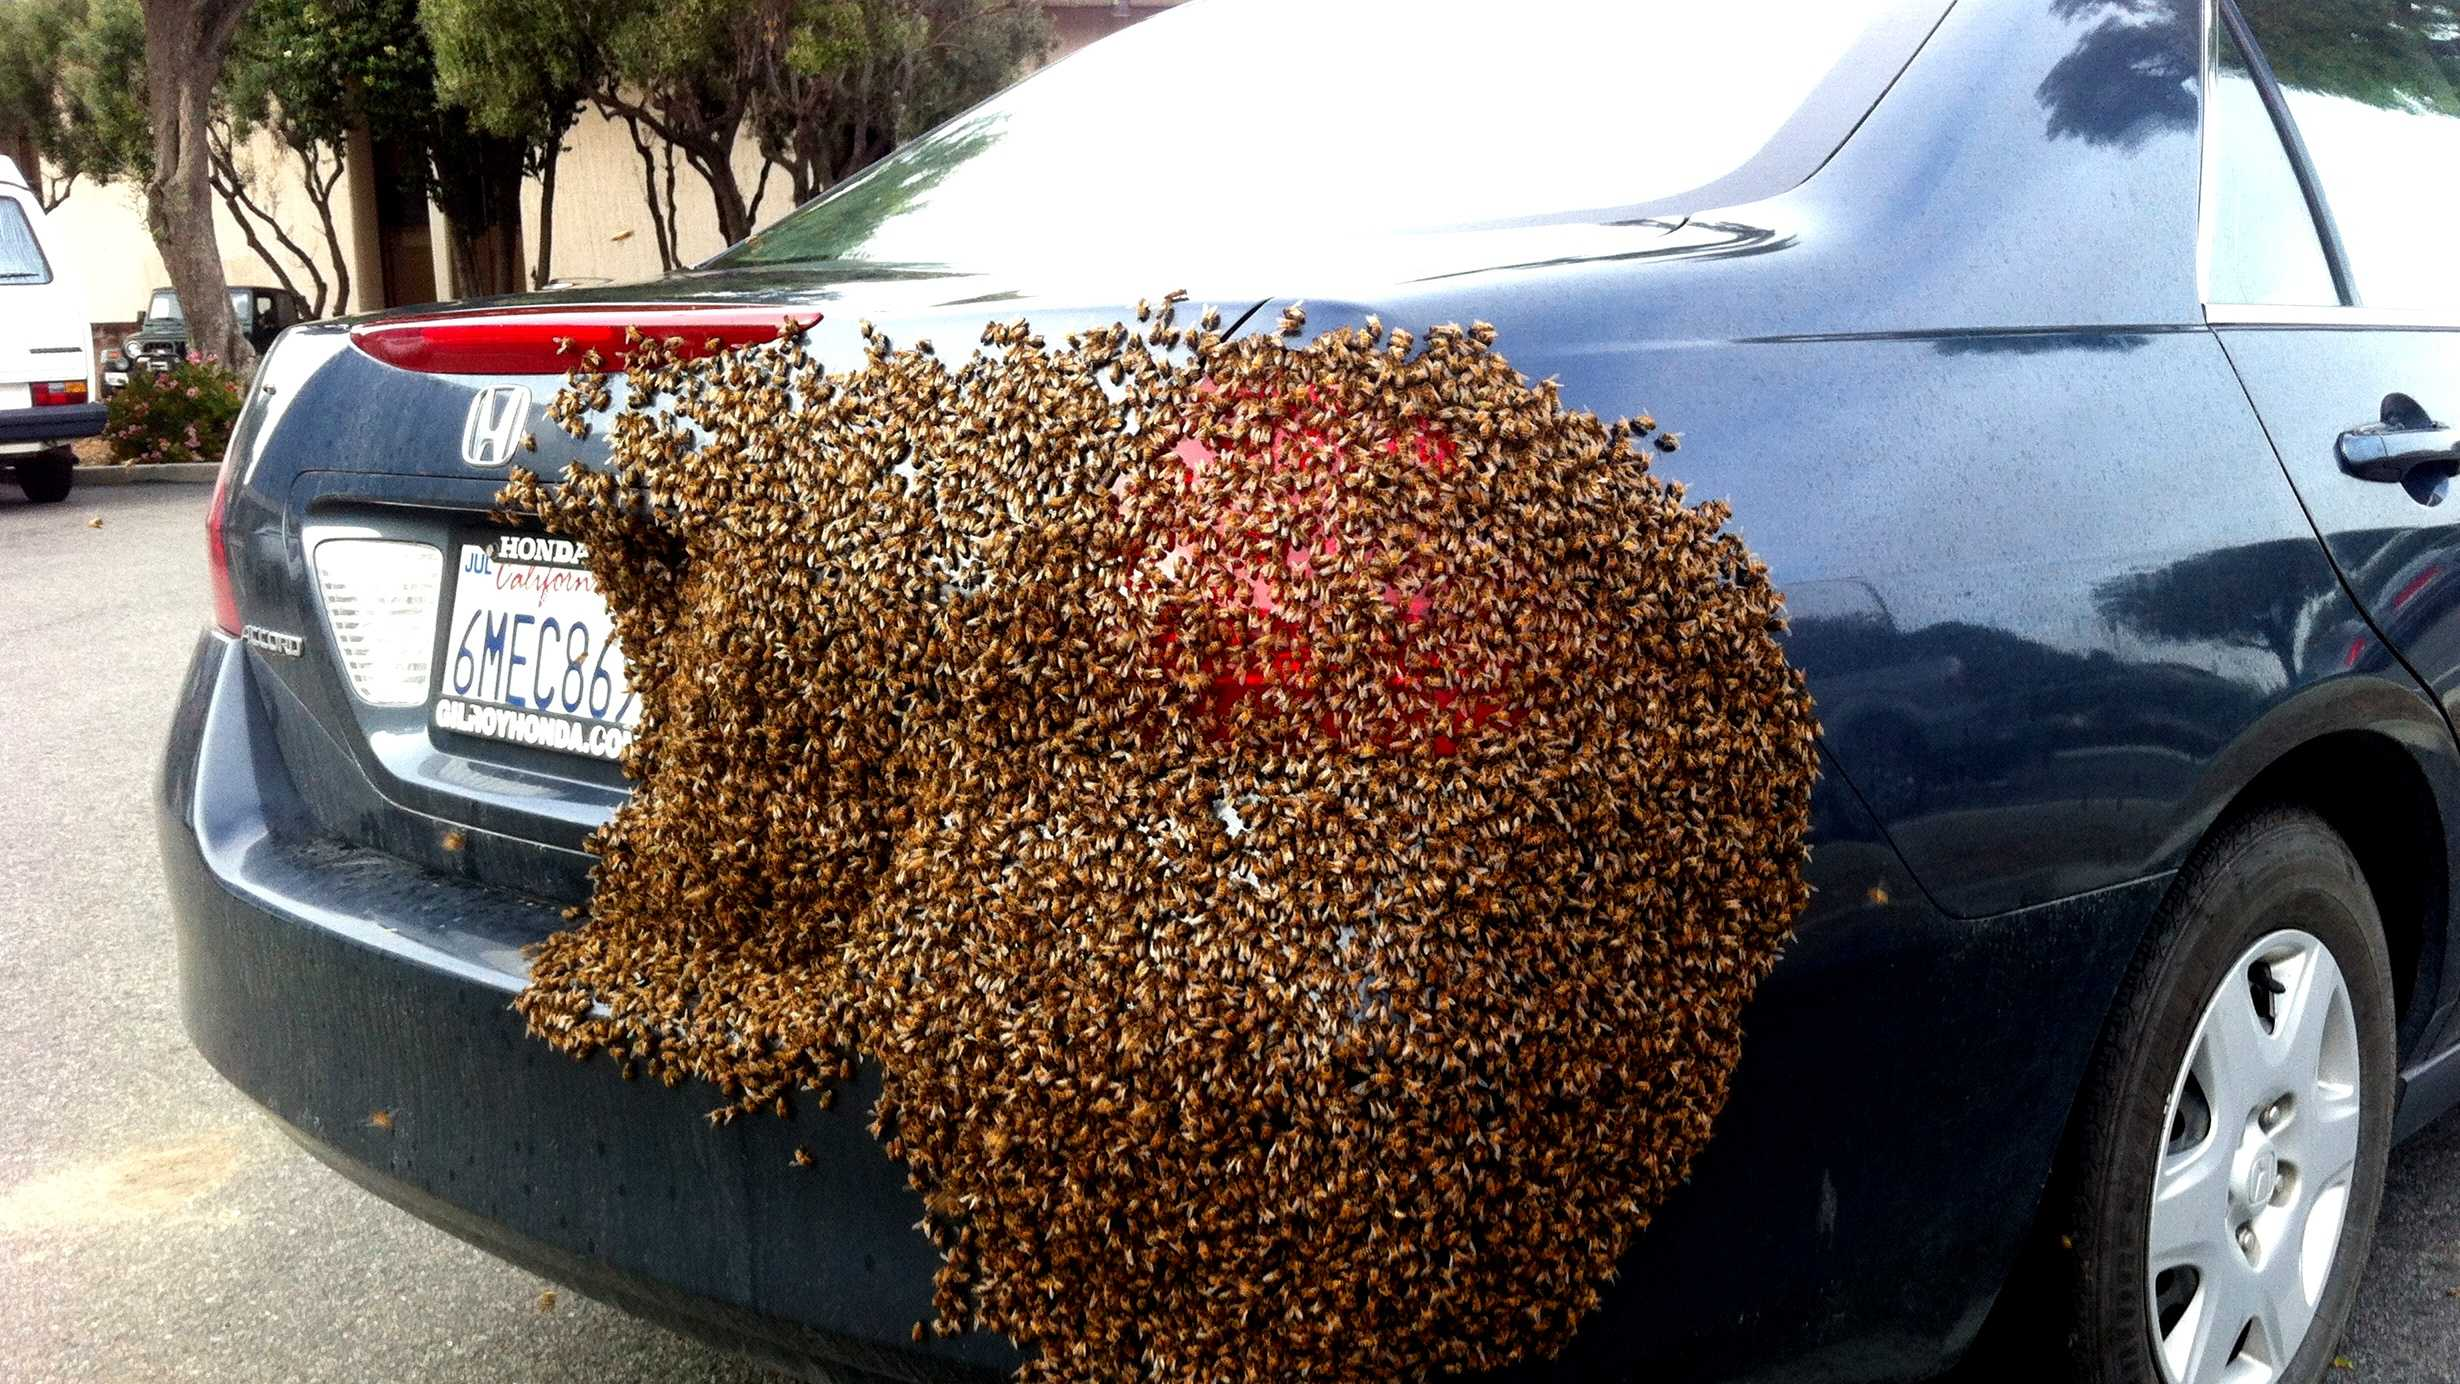 Bees swarmed this car in downtown Salinas on Wednesday.